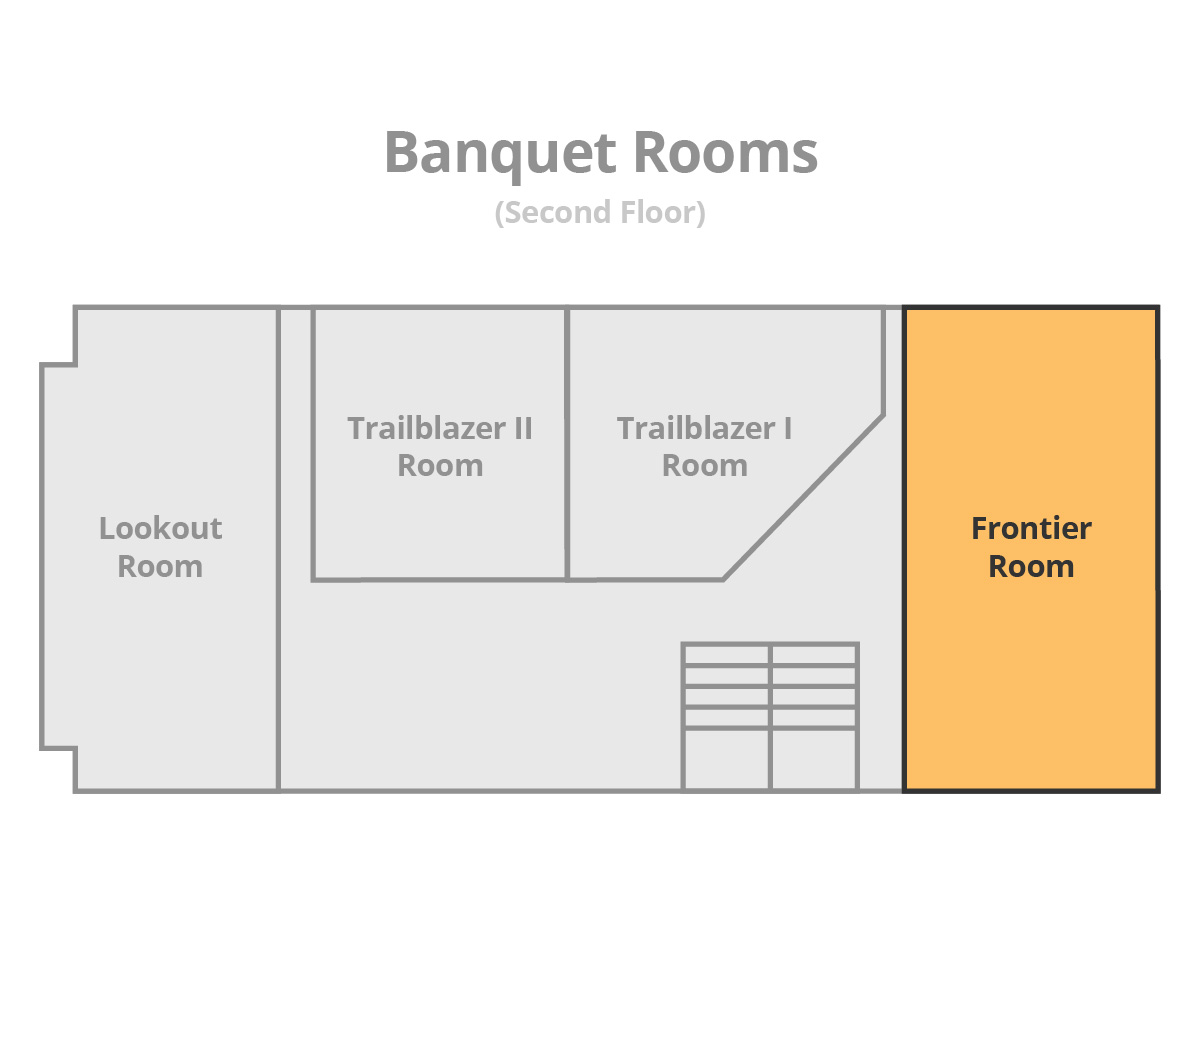 Banquet Rooms Layout